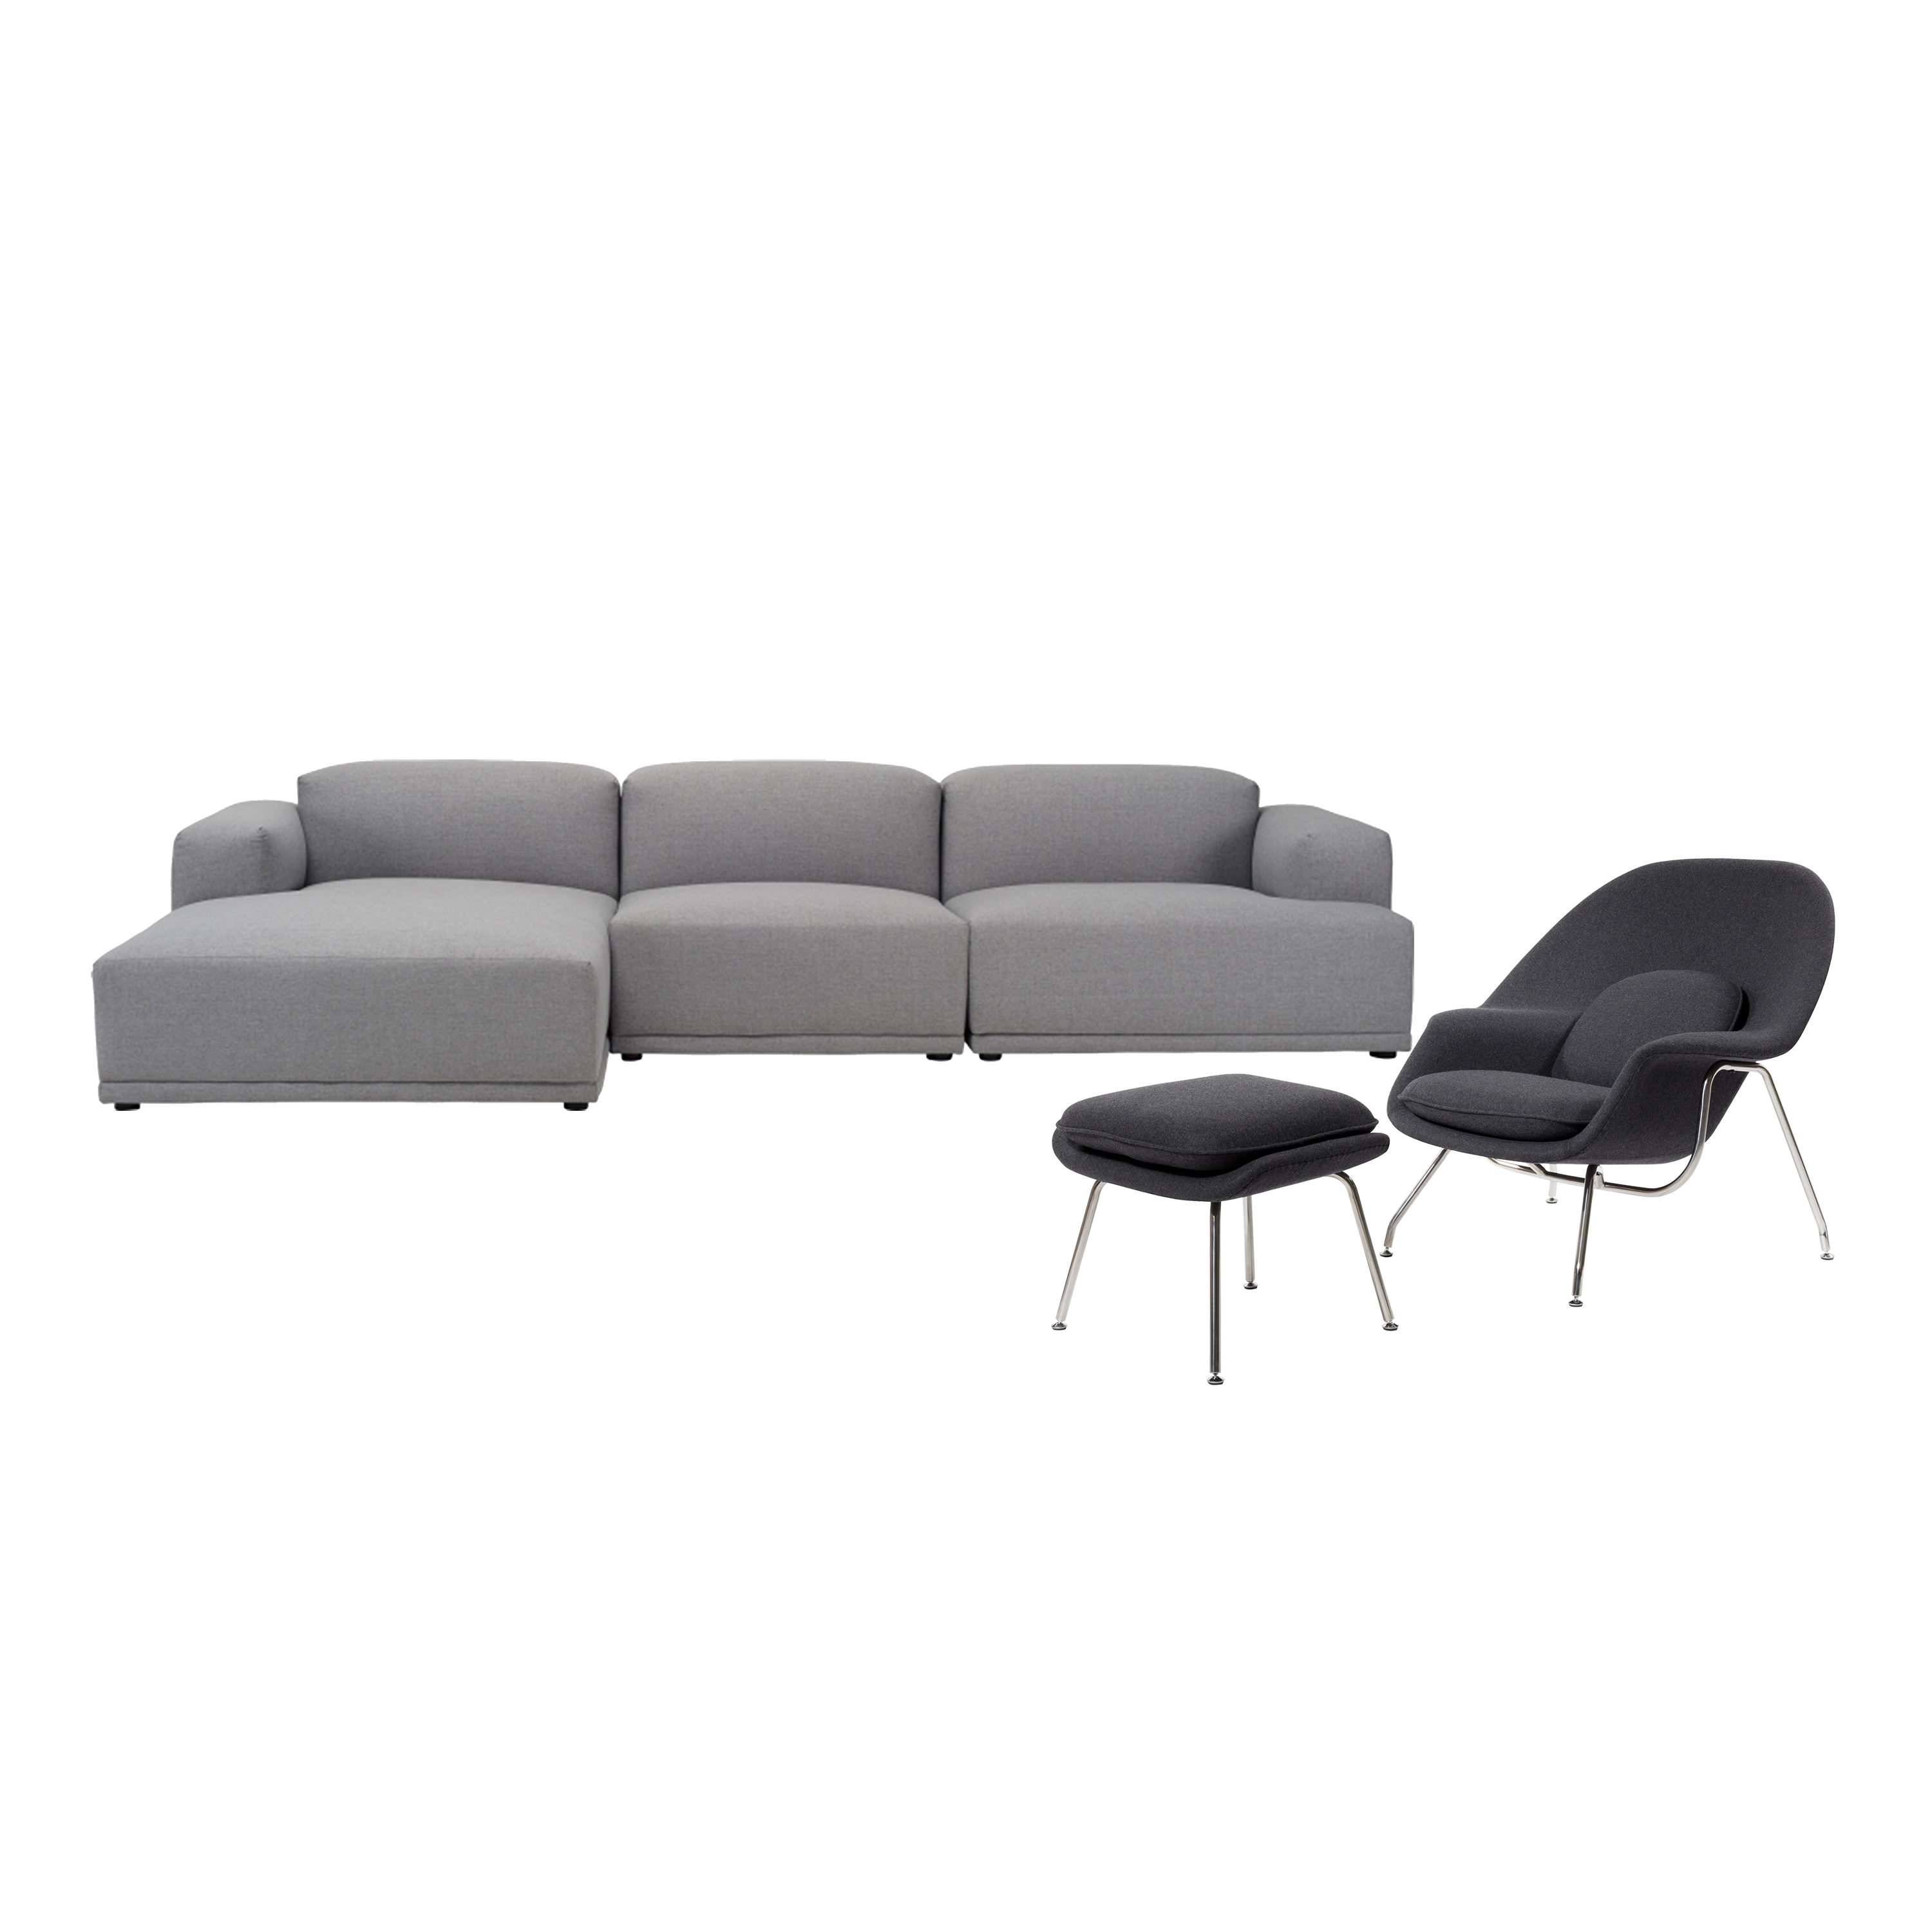 Flex 4 Seater L Shape Sofa With Saarinen Womb Chair With Ottoman